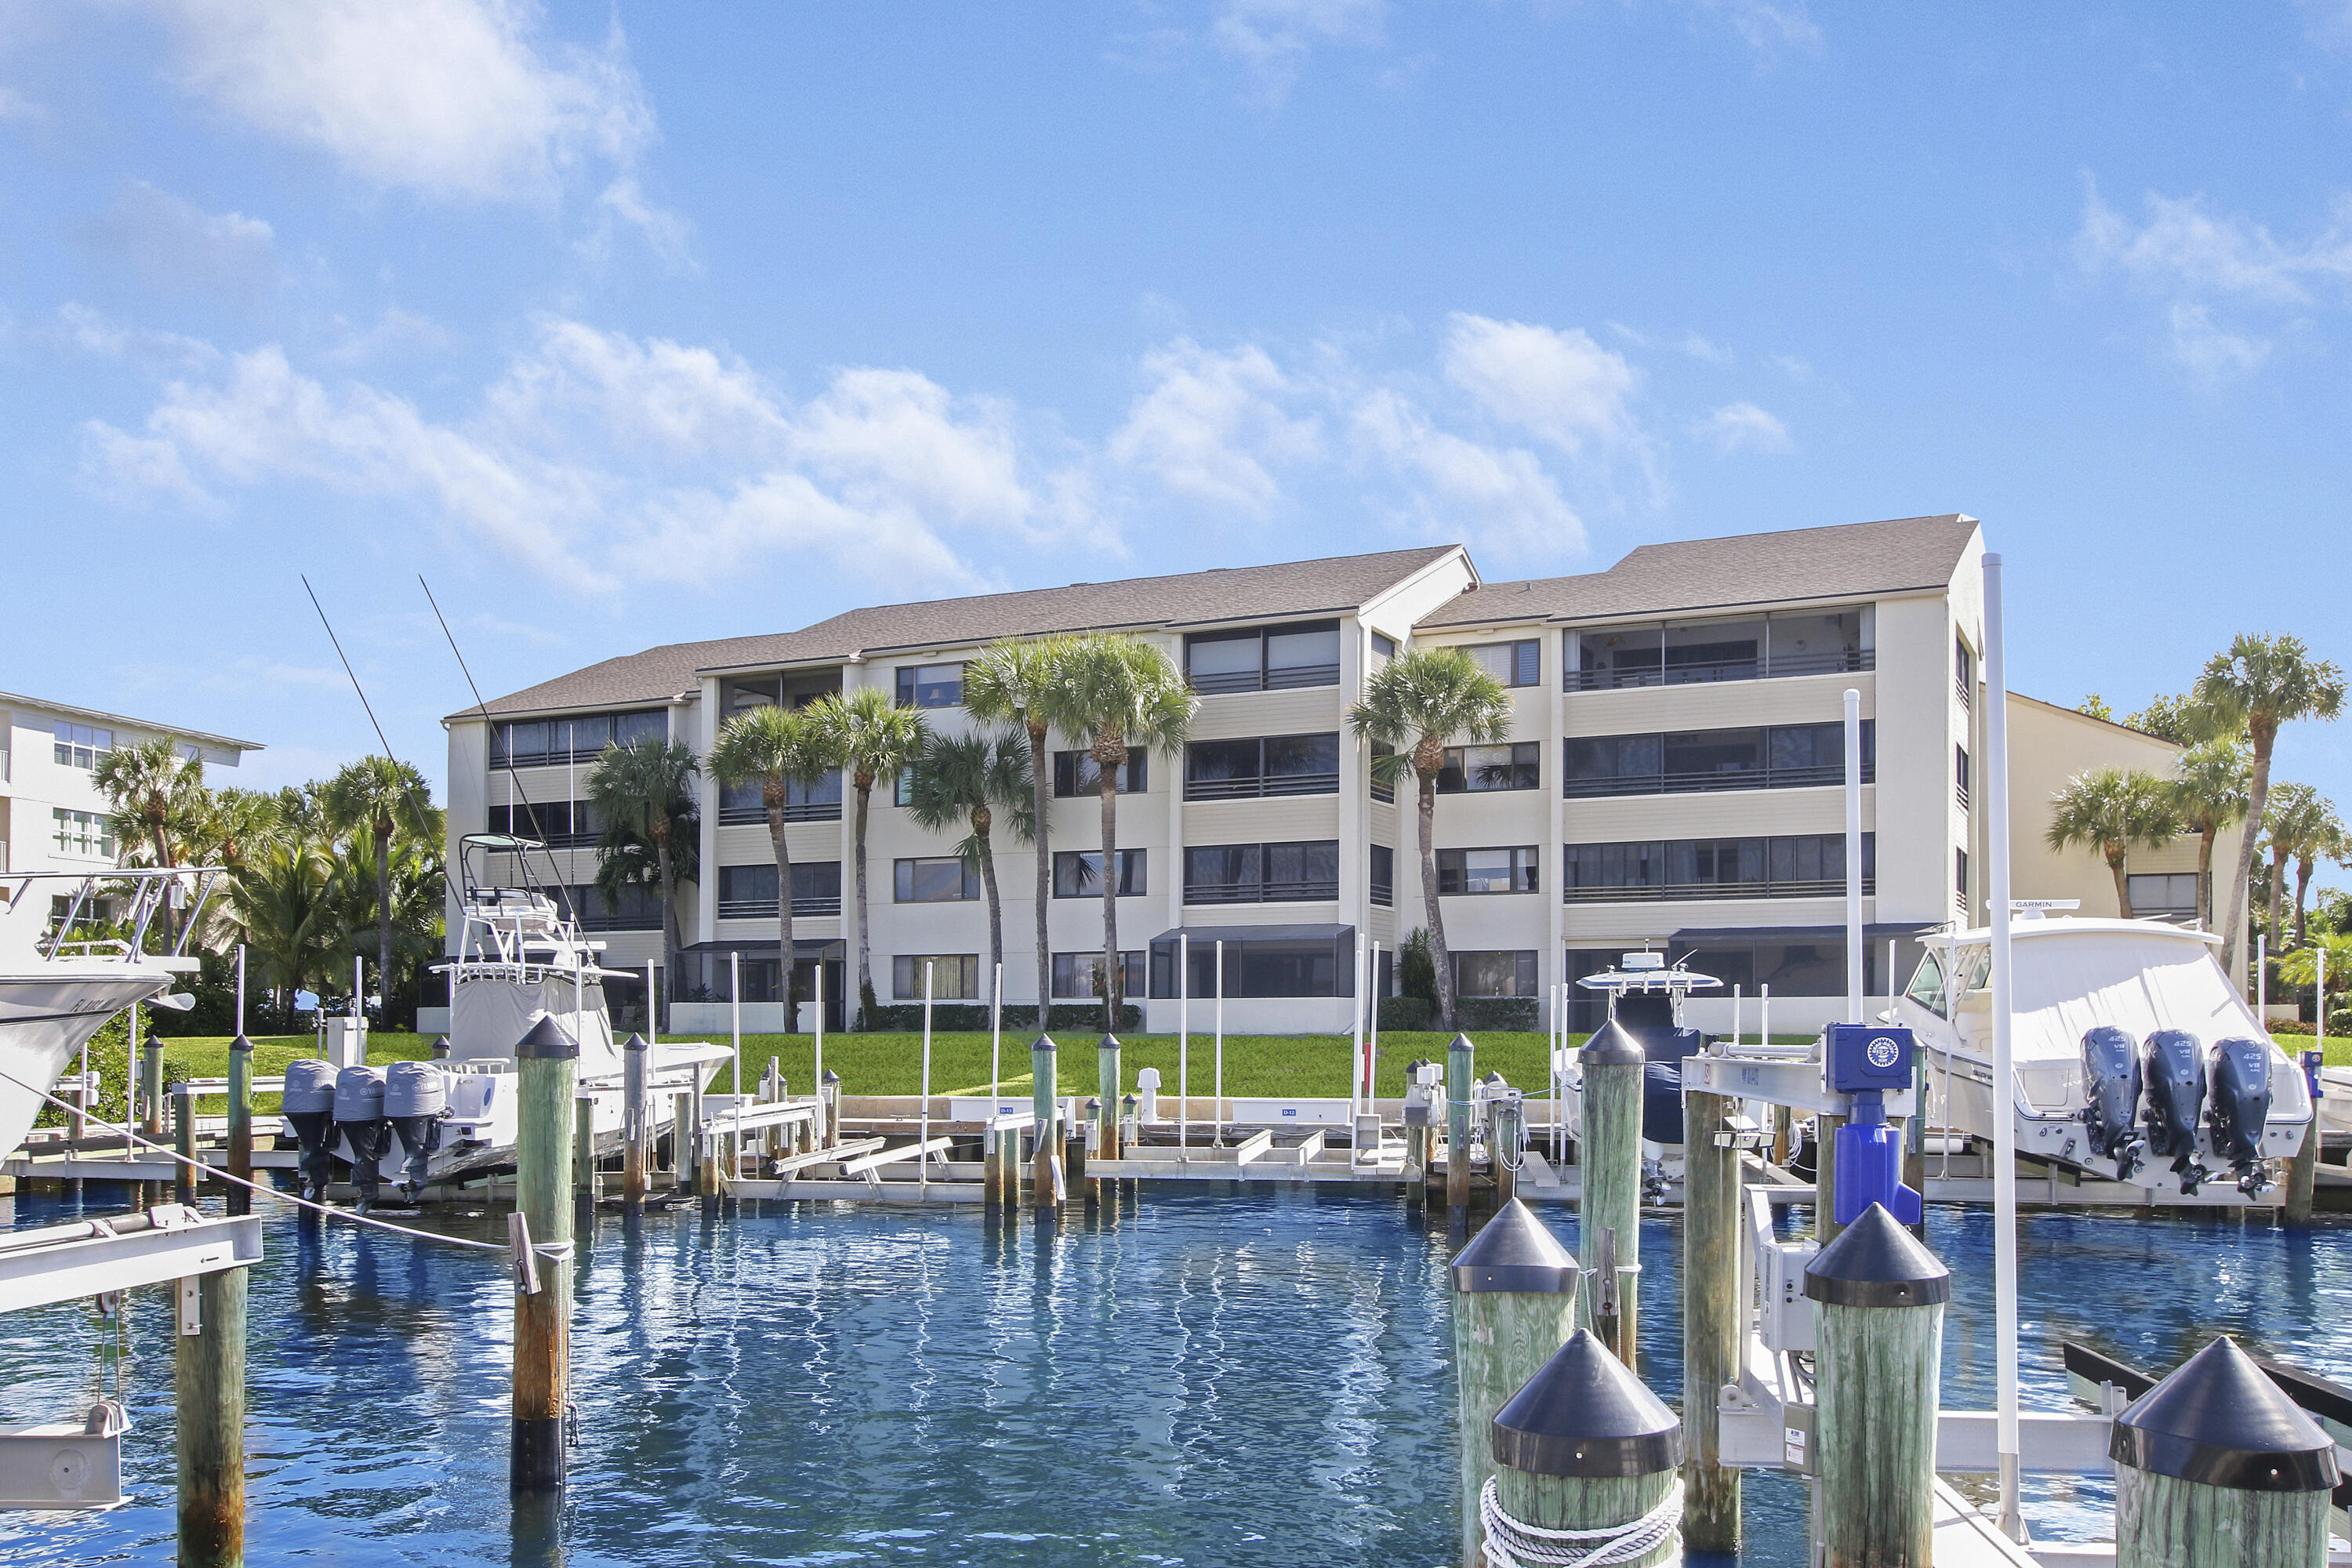 Rare opportunity to own a piece of paradise in highly sought-after Oak Harbour, a 24-hour private gated boating community situated on the Intracoastal Waterway in Juno Beach with direct access to the Atlantic Ocean. No fixed bridges!Gorgeous 2-bedroom, 2-bath corner unit condo that overlooks the marina. Spend endless afternoons enjoying sunsets from your enclosed patio! Community offers amenities such as a clubhouse, indoor gym and outdoor grilling. Beautifully renovated bathrooms, new ceramic tile throughout living, patio & bedroom areas. A/C replaced in 2018. Oak Harbour is located conveniently close to shopping, great restaurants, PB International Airport, Universities & golf courses. This is the place you've been looking for!Dock also available for purchase separately. rx-10752